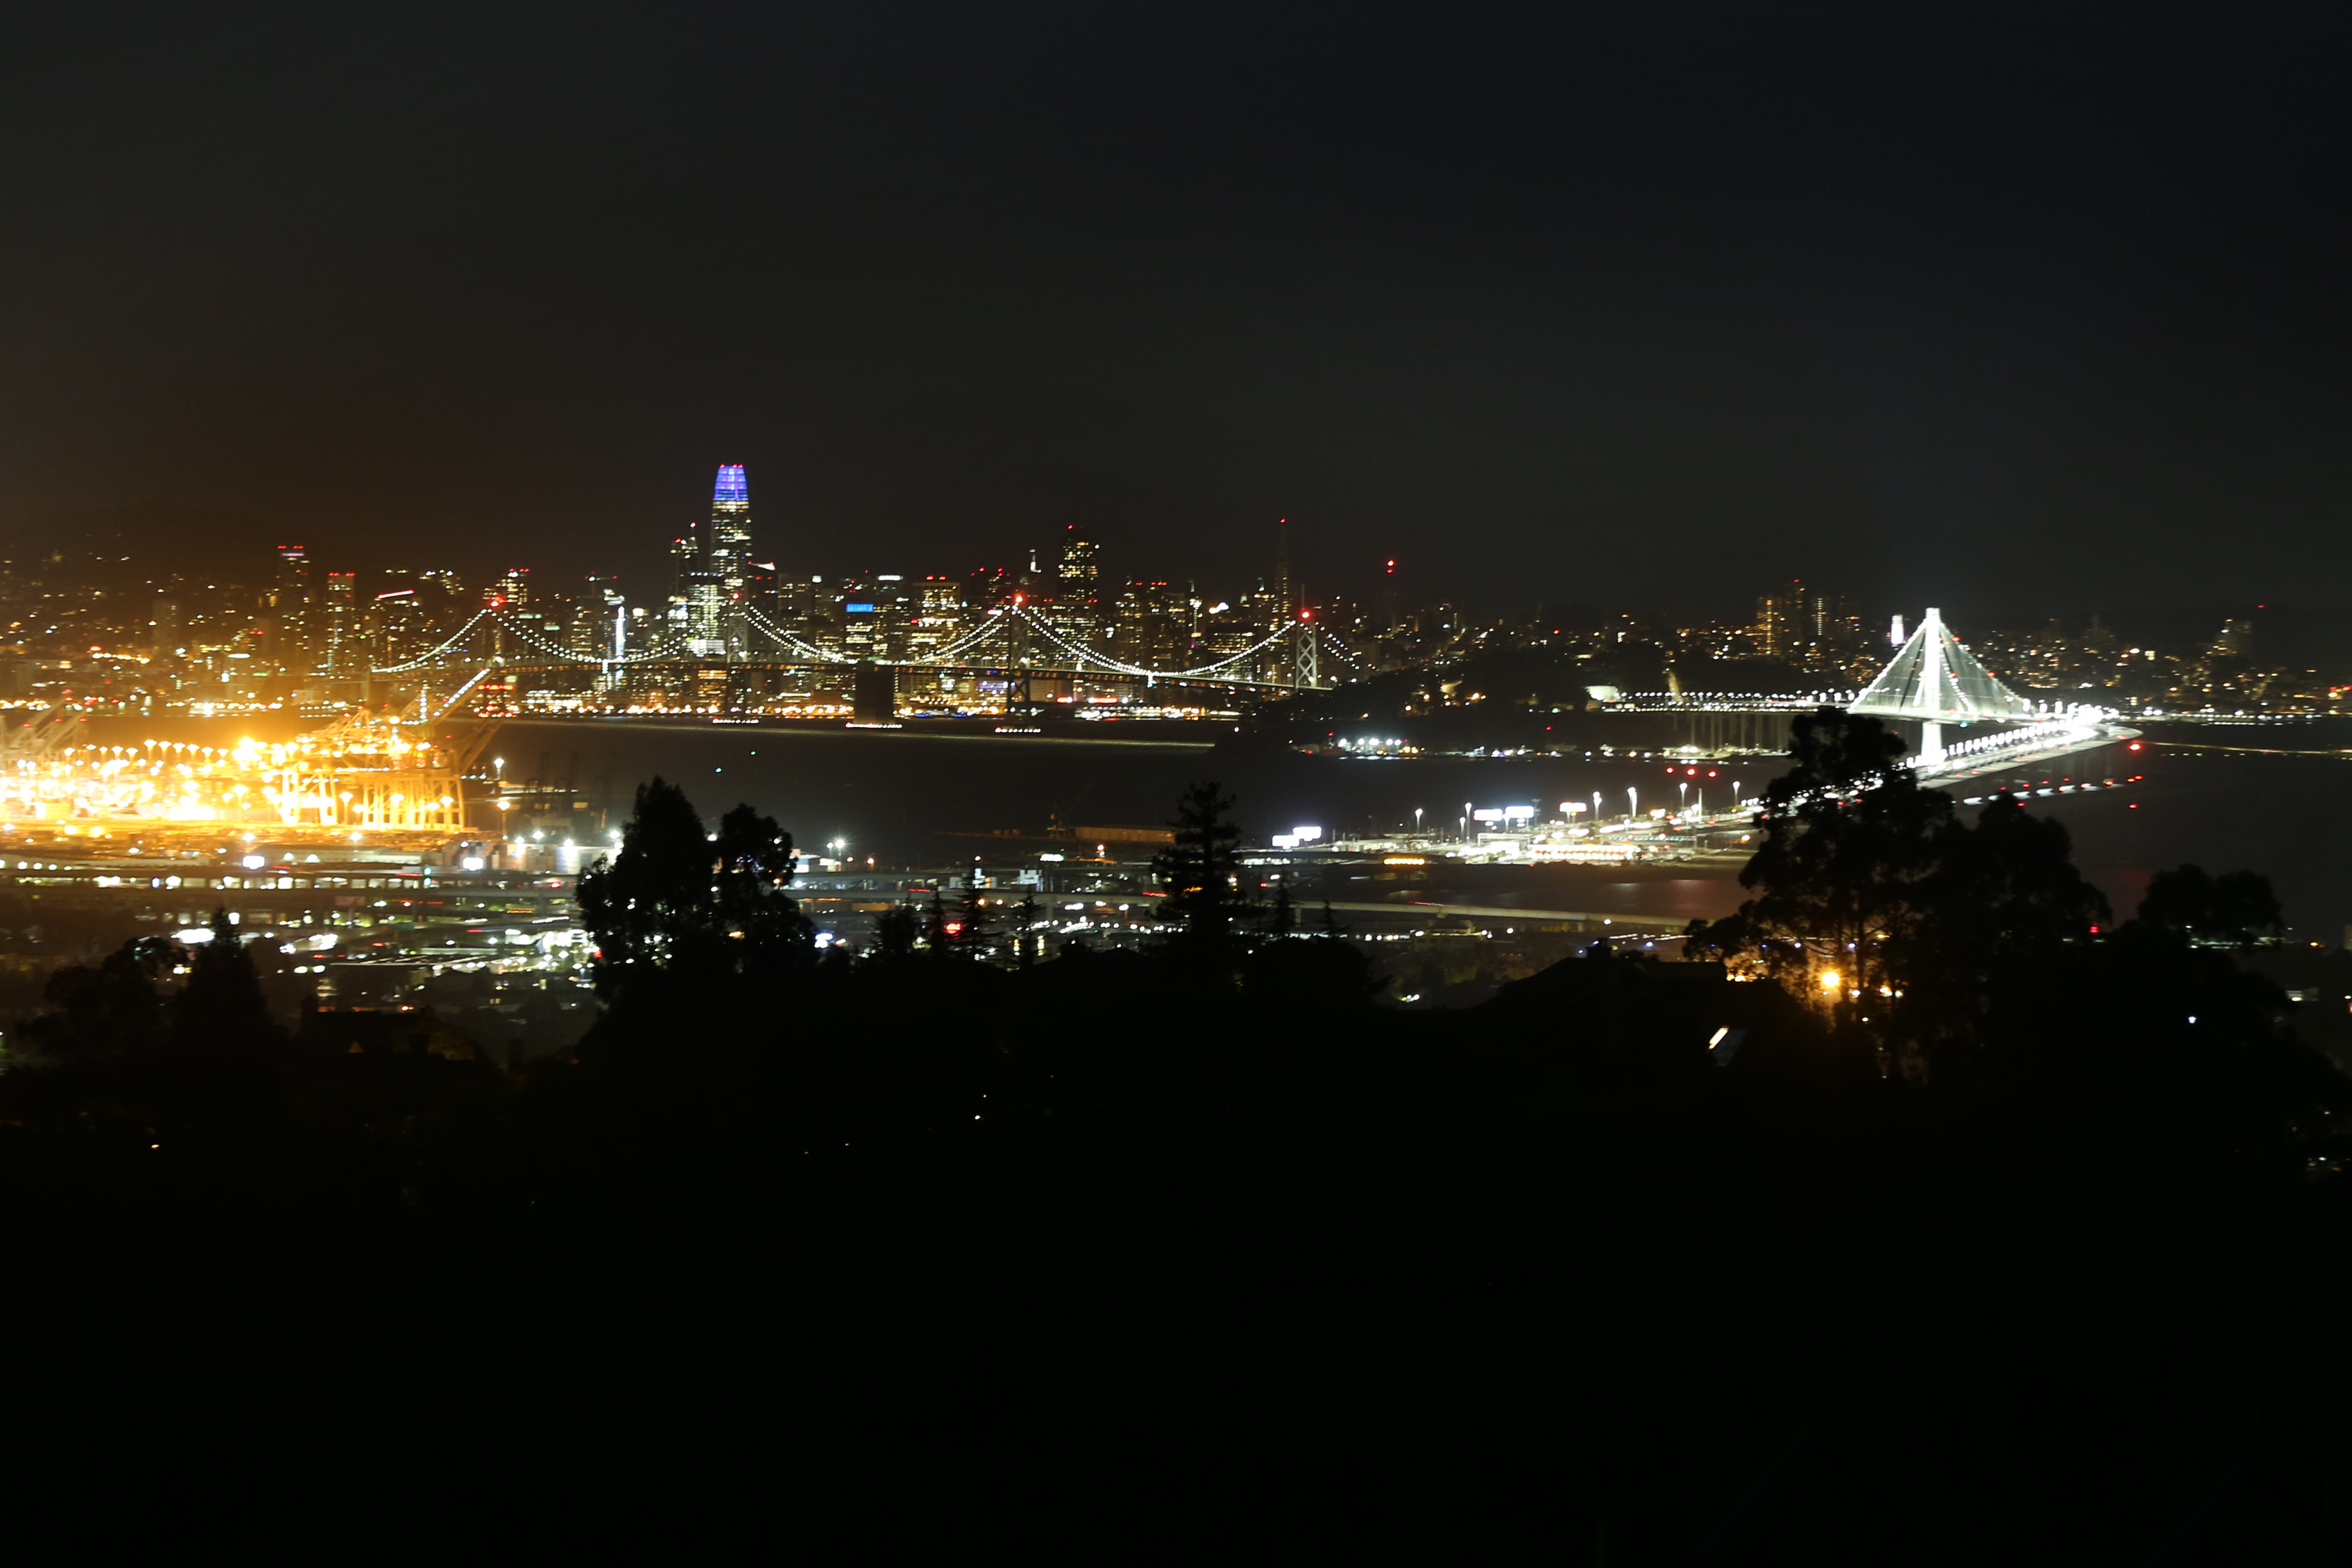 Darkened trees in the foreground, with tall buildings shimmering with lights in another city on the other side of a bay in the background.